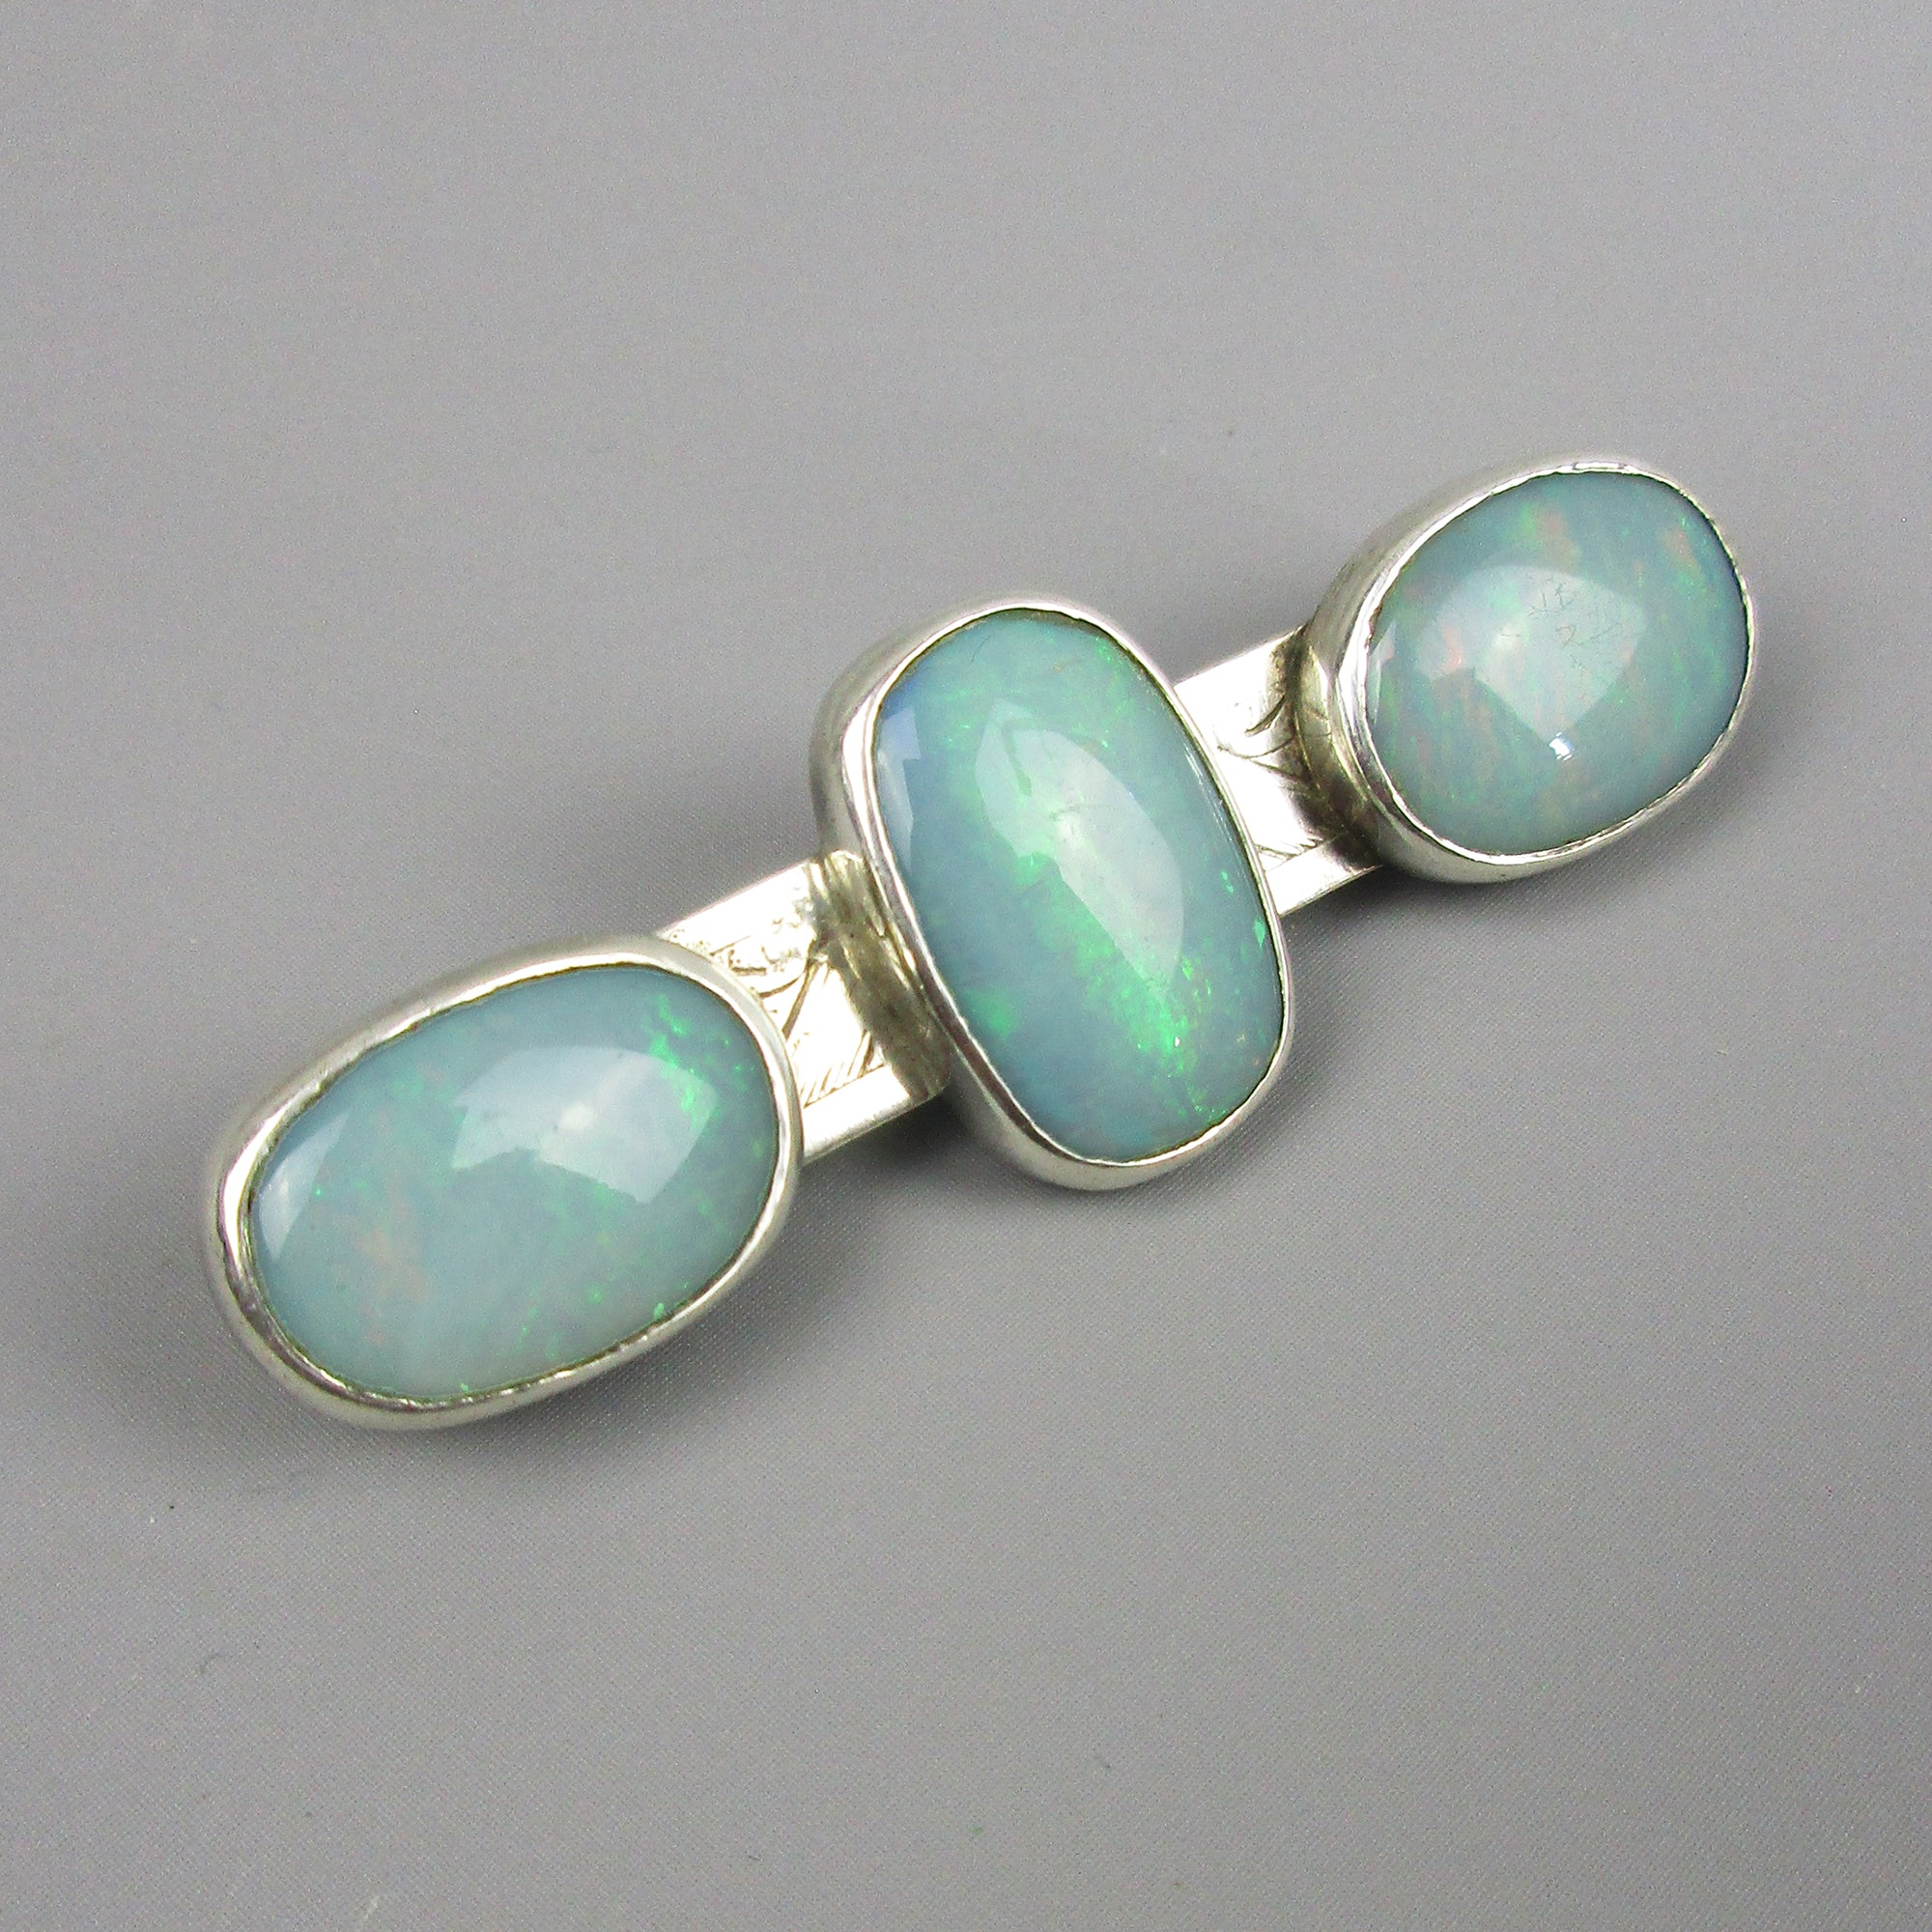 Sterling Silver and Opal Mounted Brooch 'Pan' London Vintage c1981